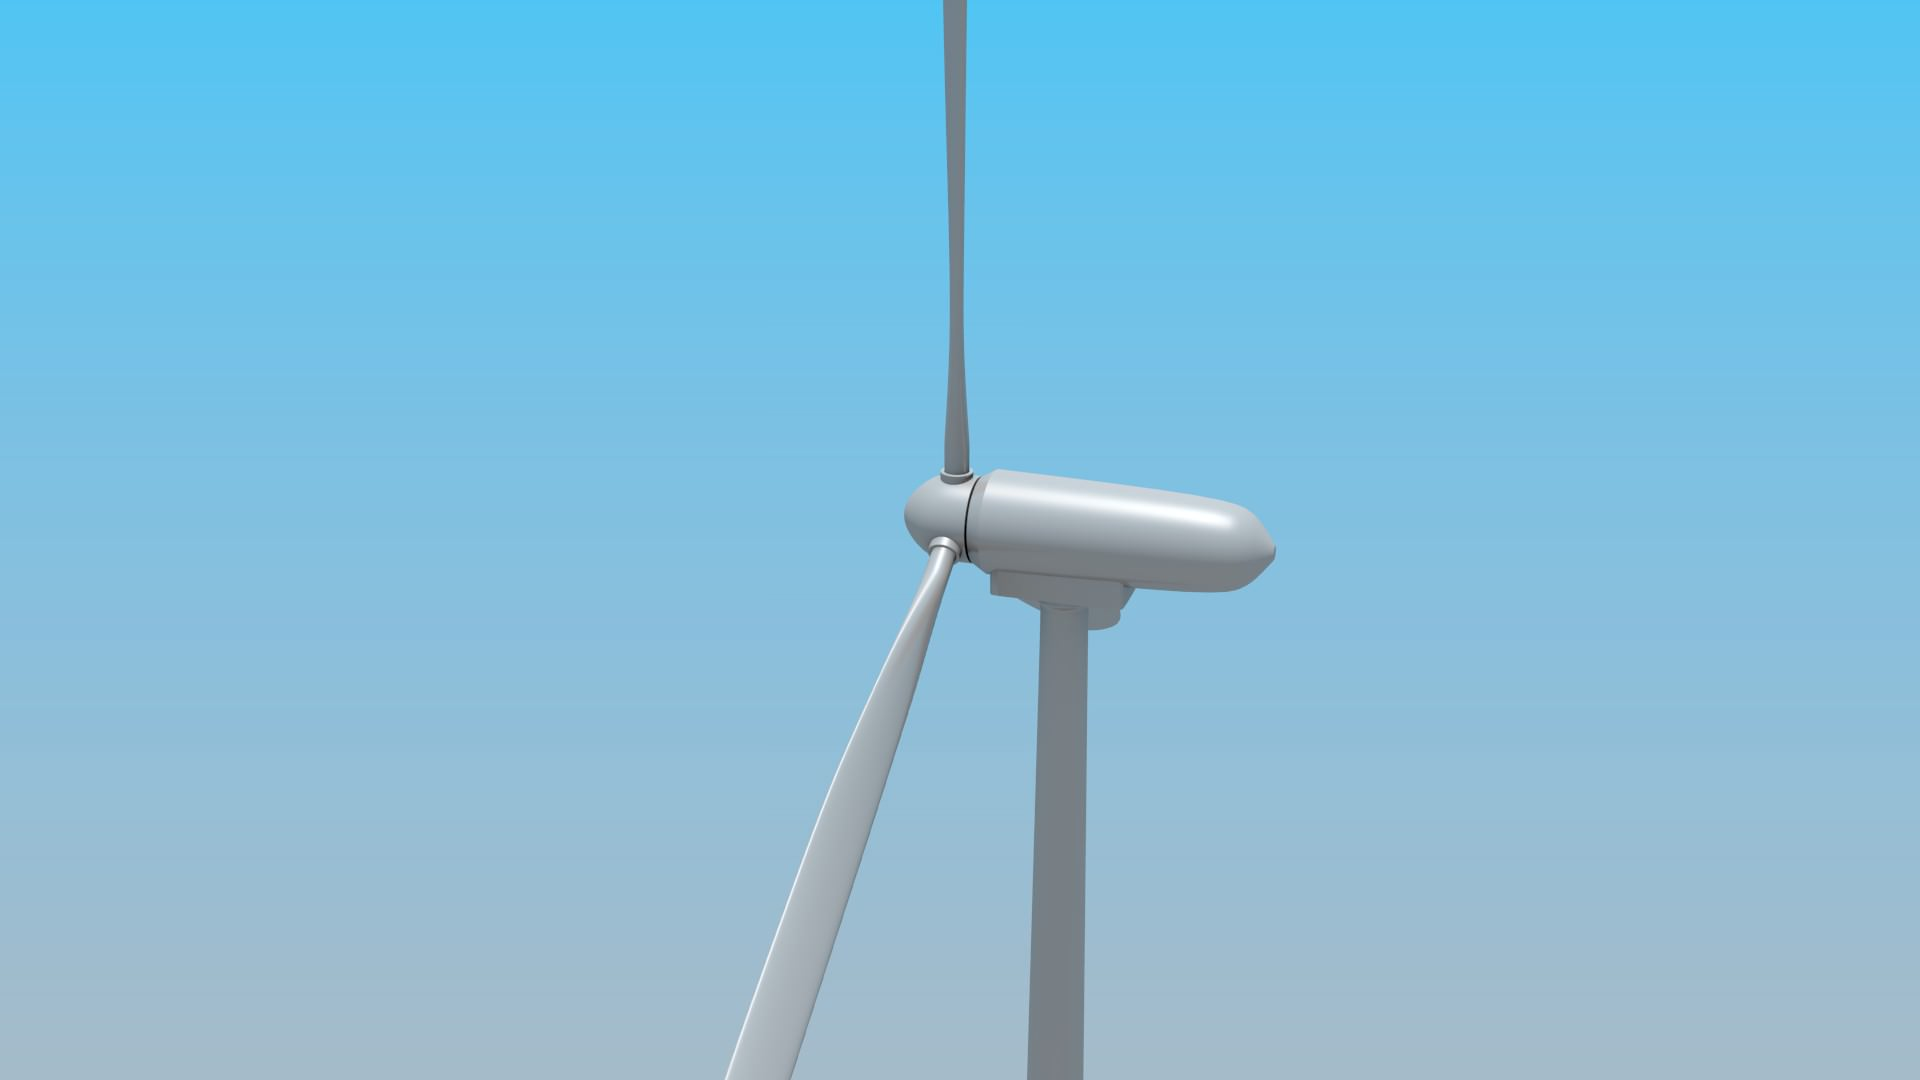 27k 0 description comments 0 wind turbine 3d model a wind turbine ...